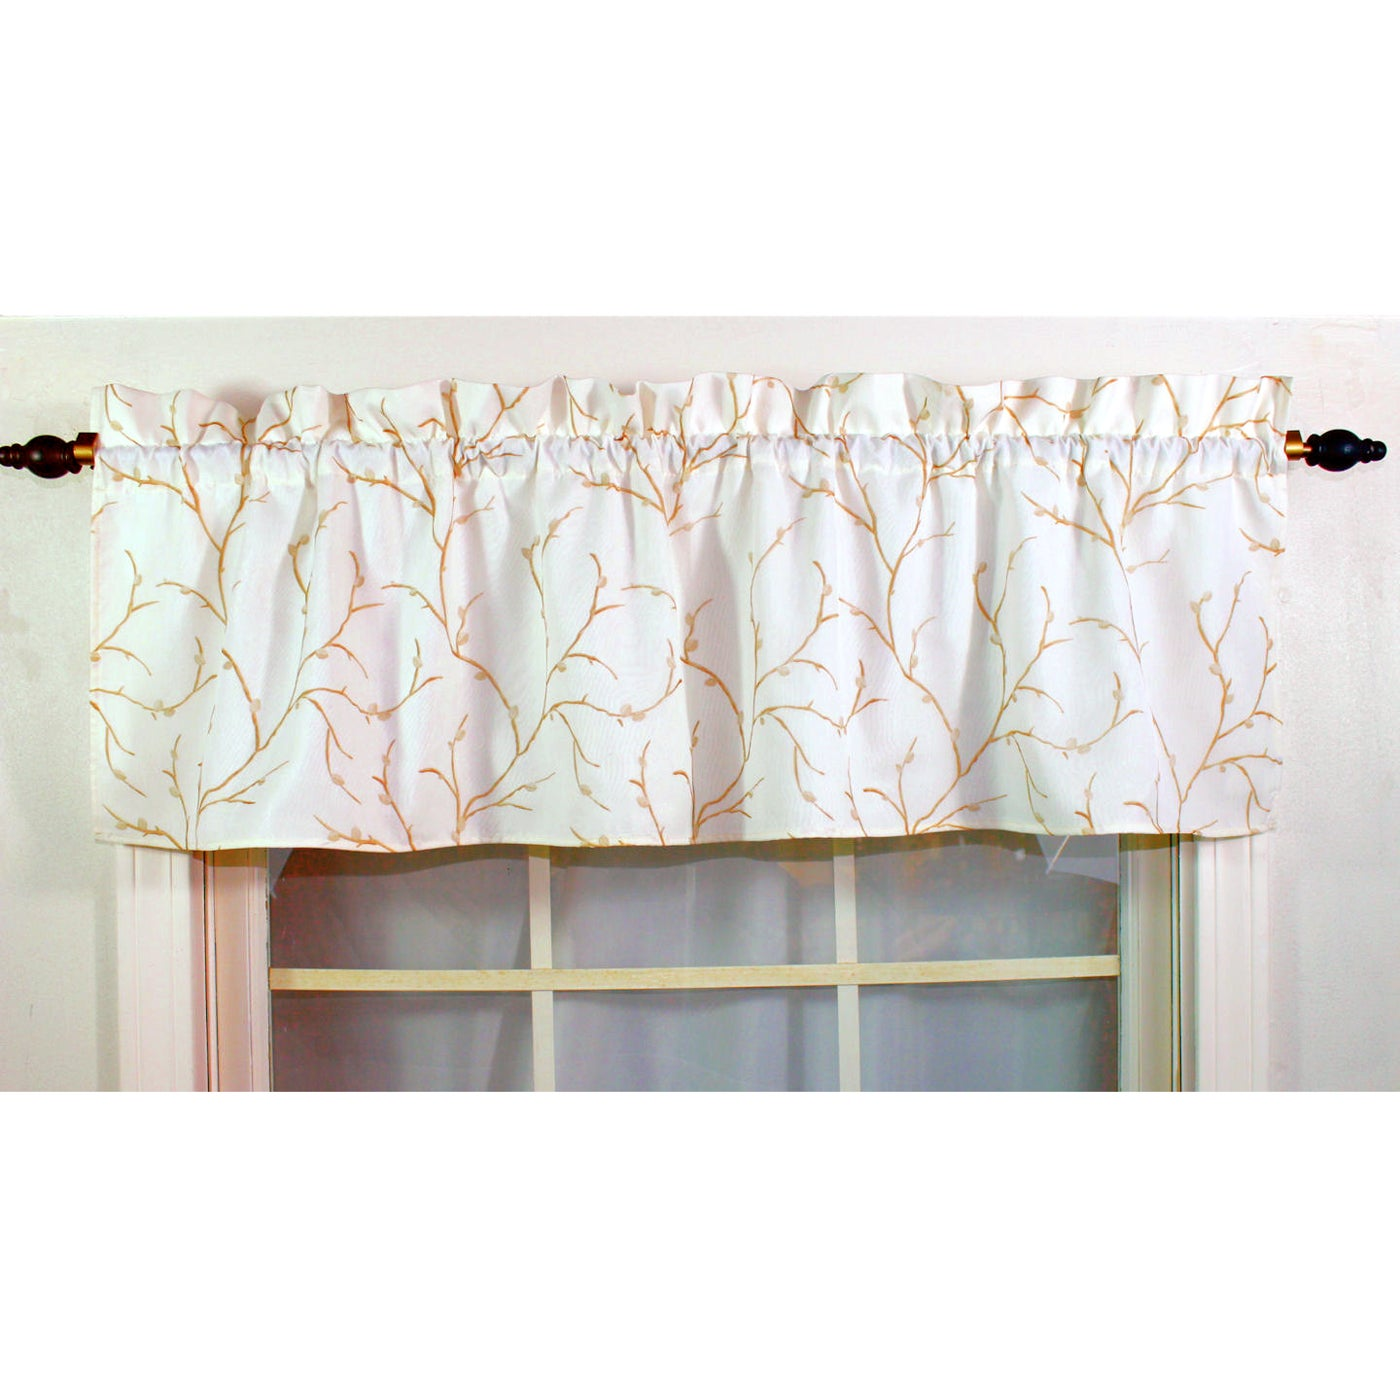 net ivory pelmets european with drapes bedroom mila valance curtains swag pleats creamy beige index curtain majesty eyelets sheer